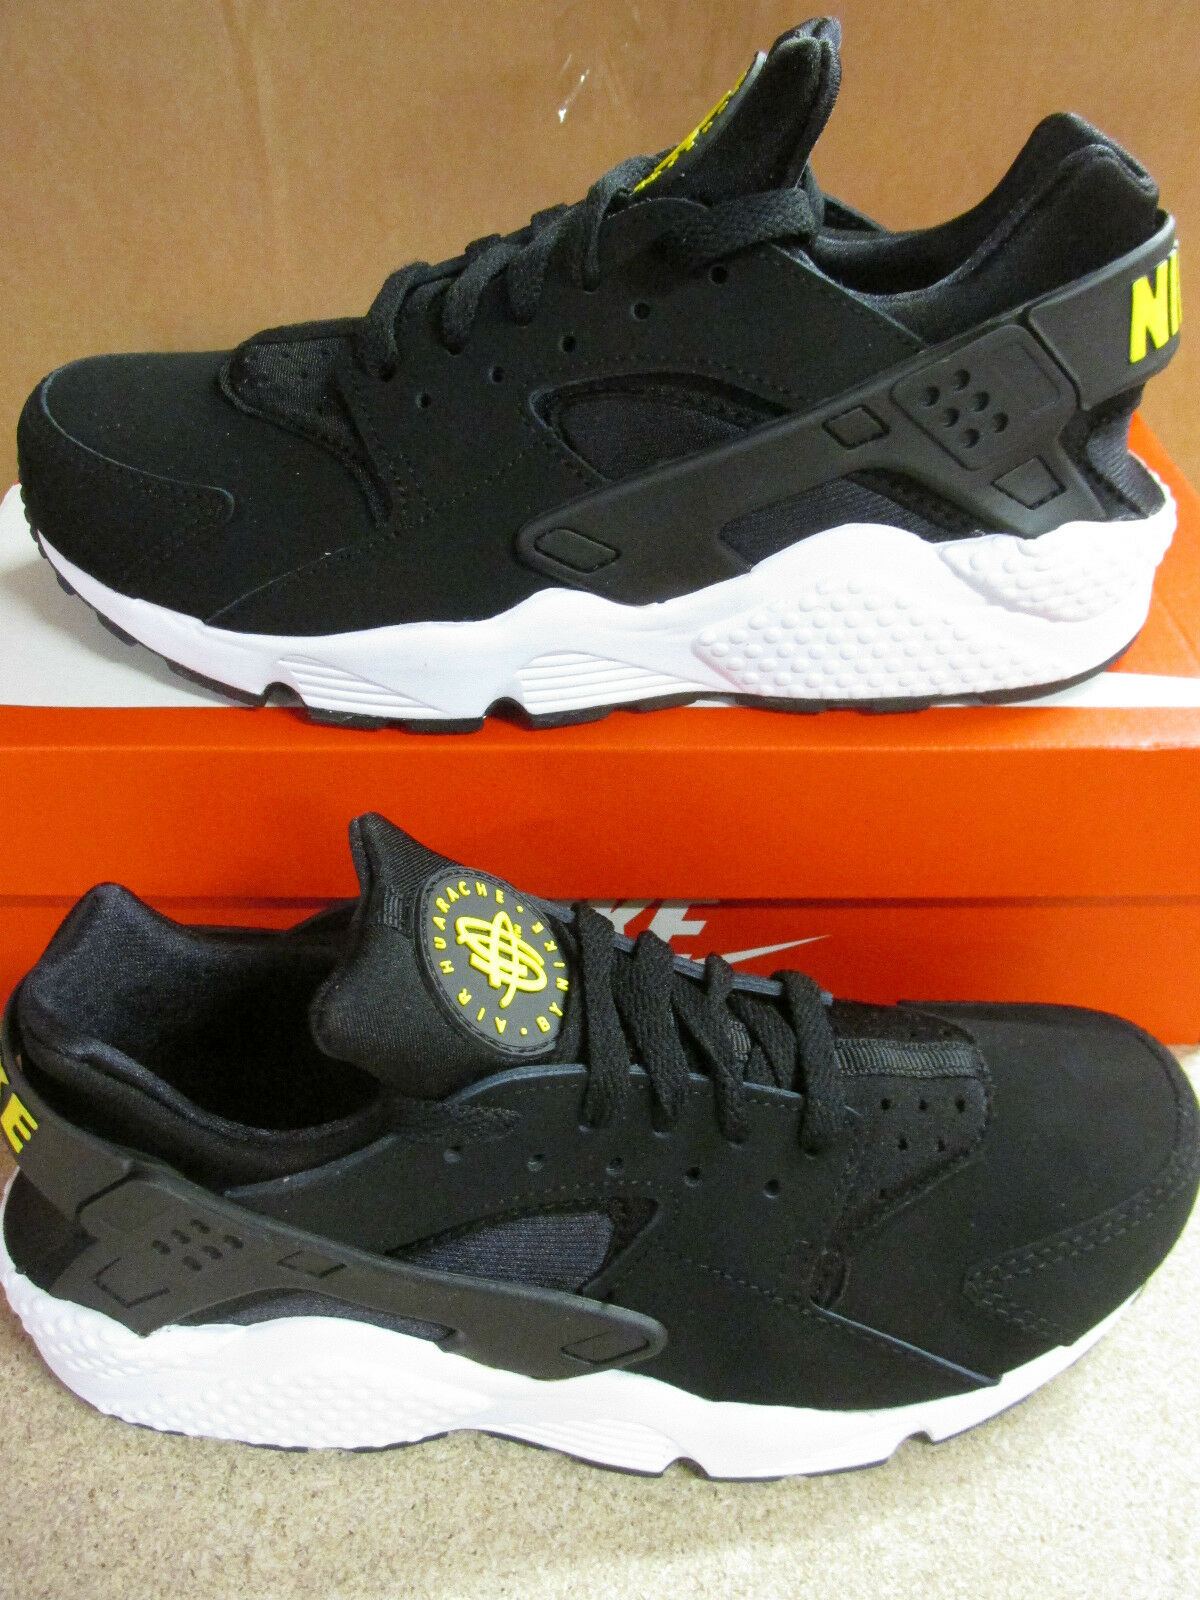 nike air huarache mens running trainers 318429 shoes 007 sneakers shoes 318429 075715